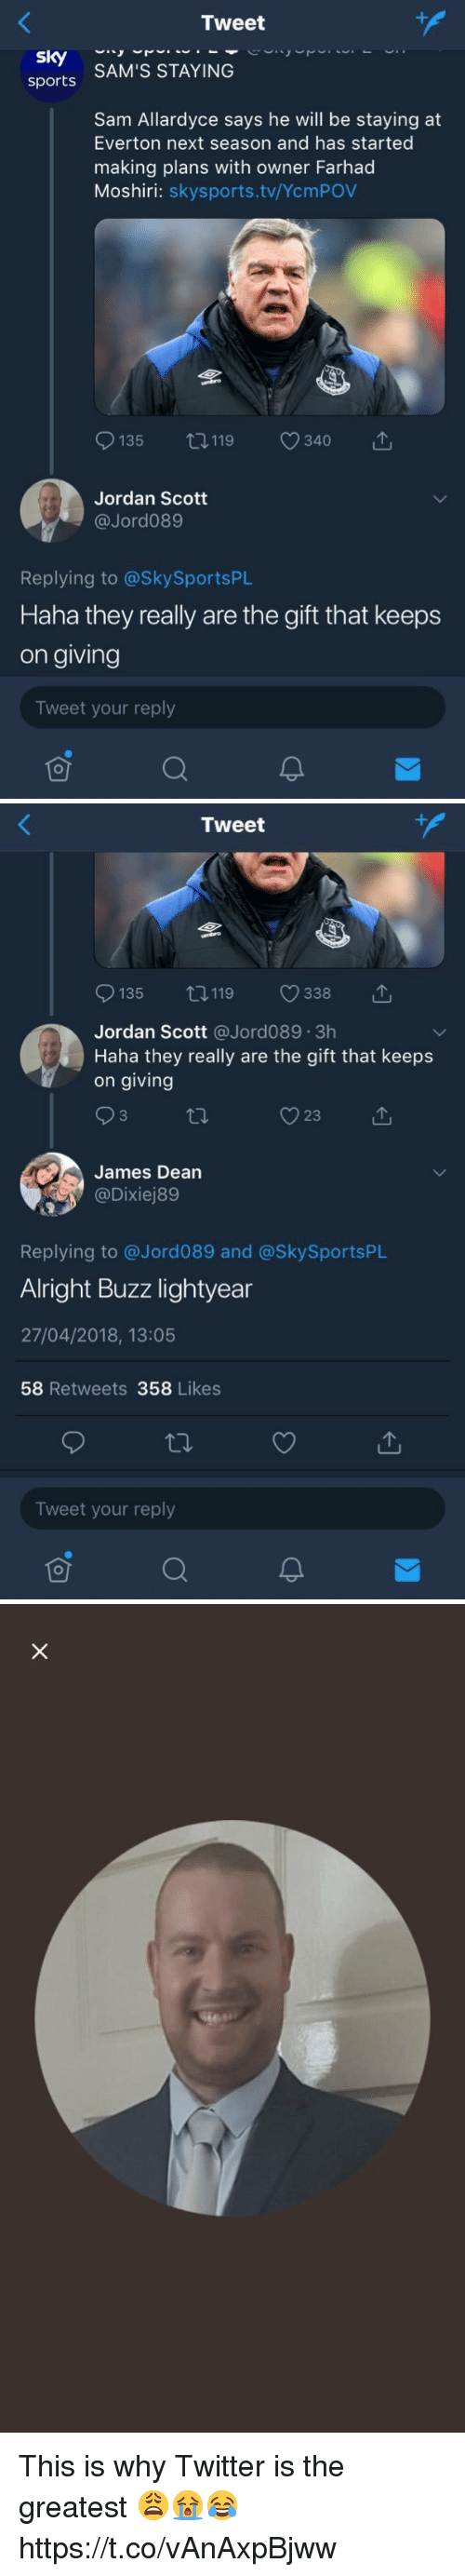 lightyear: Tweet  sports SAM'S STAYING  Sam Allardyce says he will be staying at  Everton next season and has started  making plans with owner Farhad  Moshiri: skysports.tv/YcmPOV  9135 119 340 で  Jordan Scott  @Jord089  Replying to @SkySportsPL  Haha they really are the gift that keeps  on giving  Tweet your reply   Tweet  135 0119 338 T  Jordan Scott @Jord089.3h  Haha they really are the gift that keeps  on giving  James Dean  Replying to @Jord089 and @SkySportsPlL  Alright Buzz lightyear  27/04/2018, 13:05  58 Retweets 358 Likes  Tweet your reply This is why Twitter is the greatest 😩😭😂 https://t.co/vAnAxpBjww